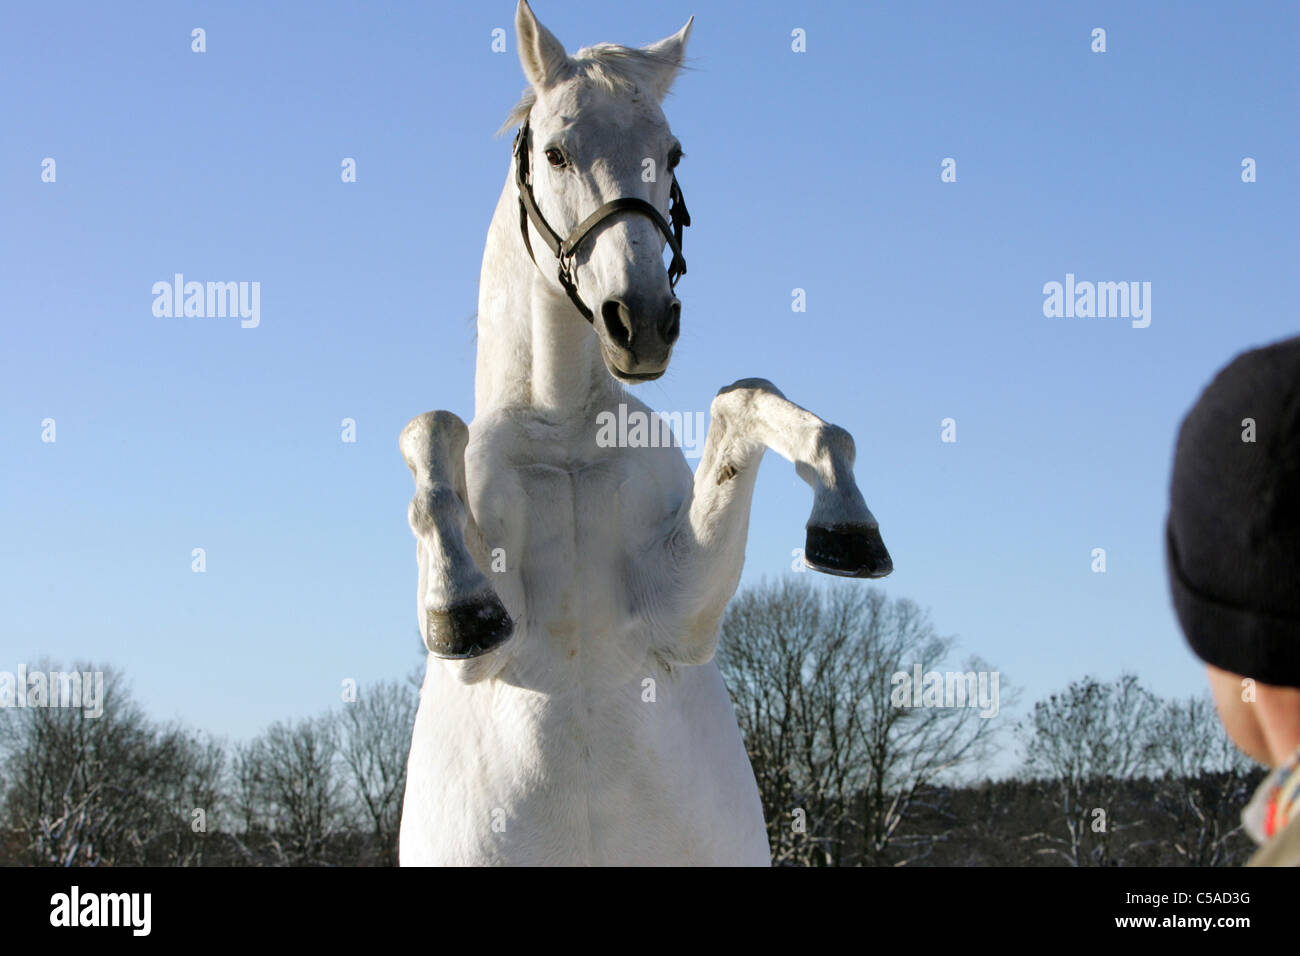 A white horse rearing in front of a human - Stock Image